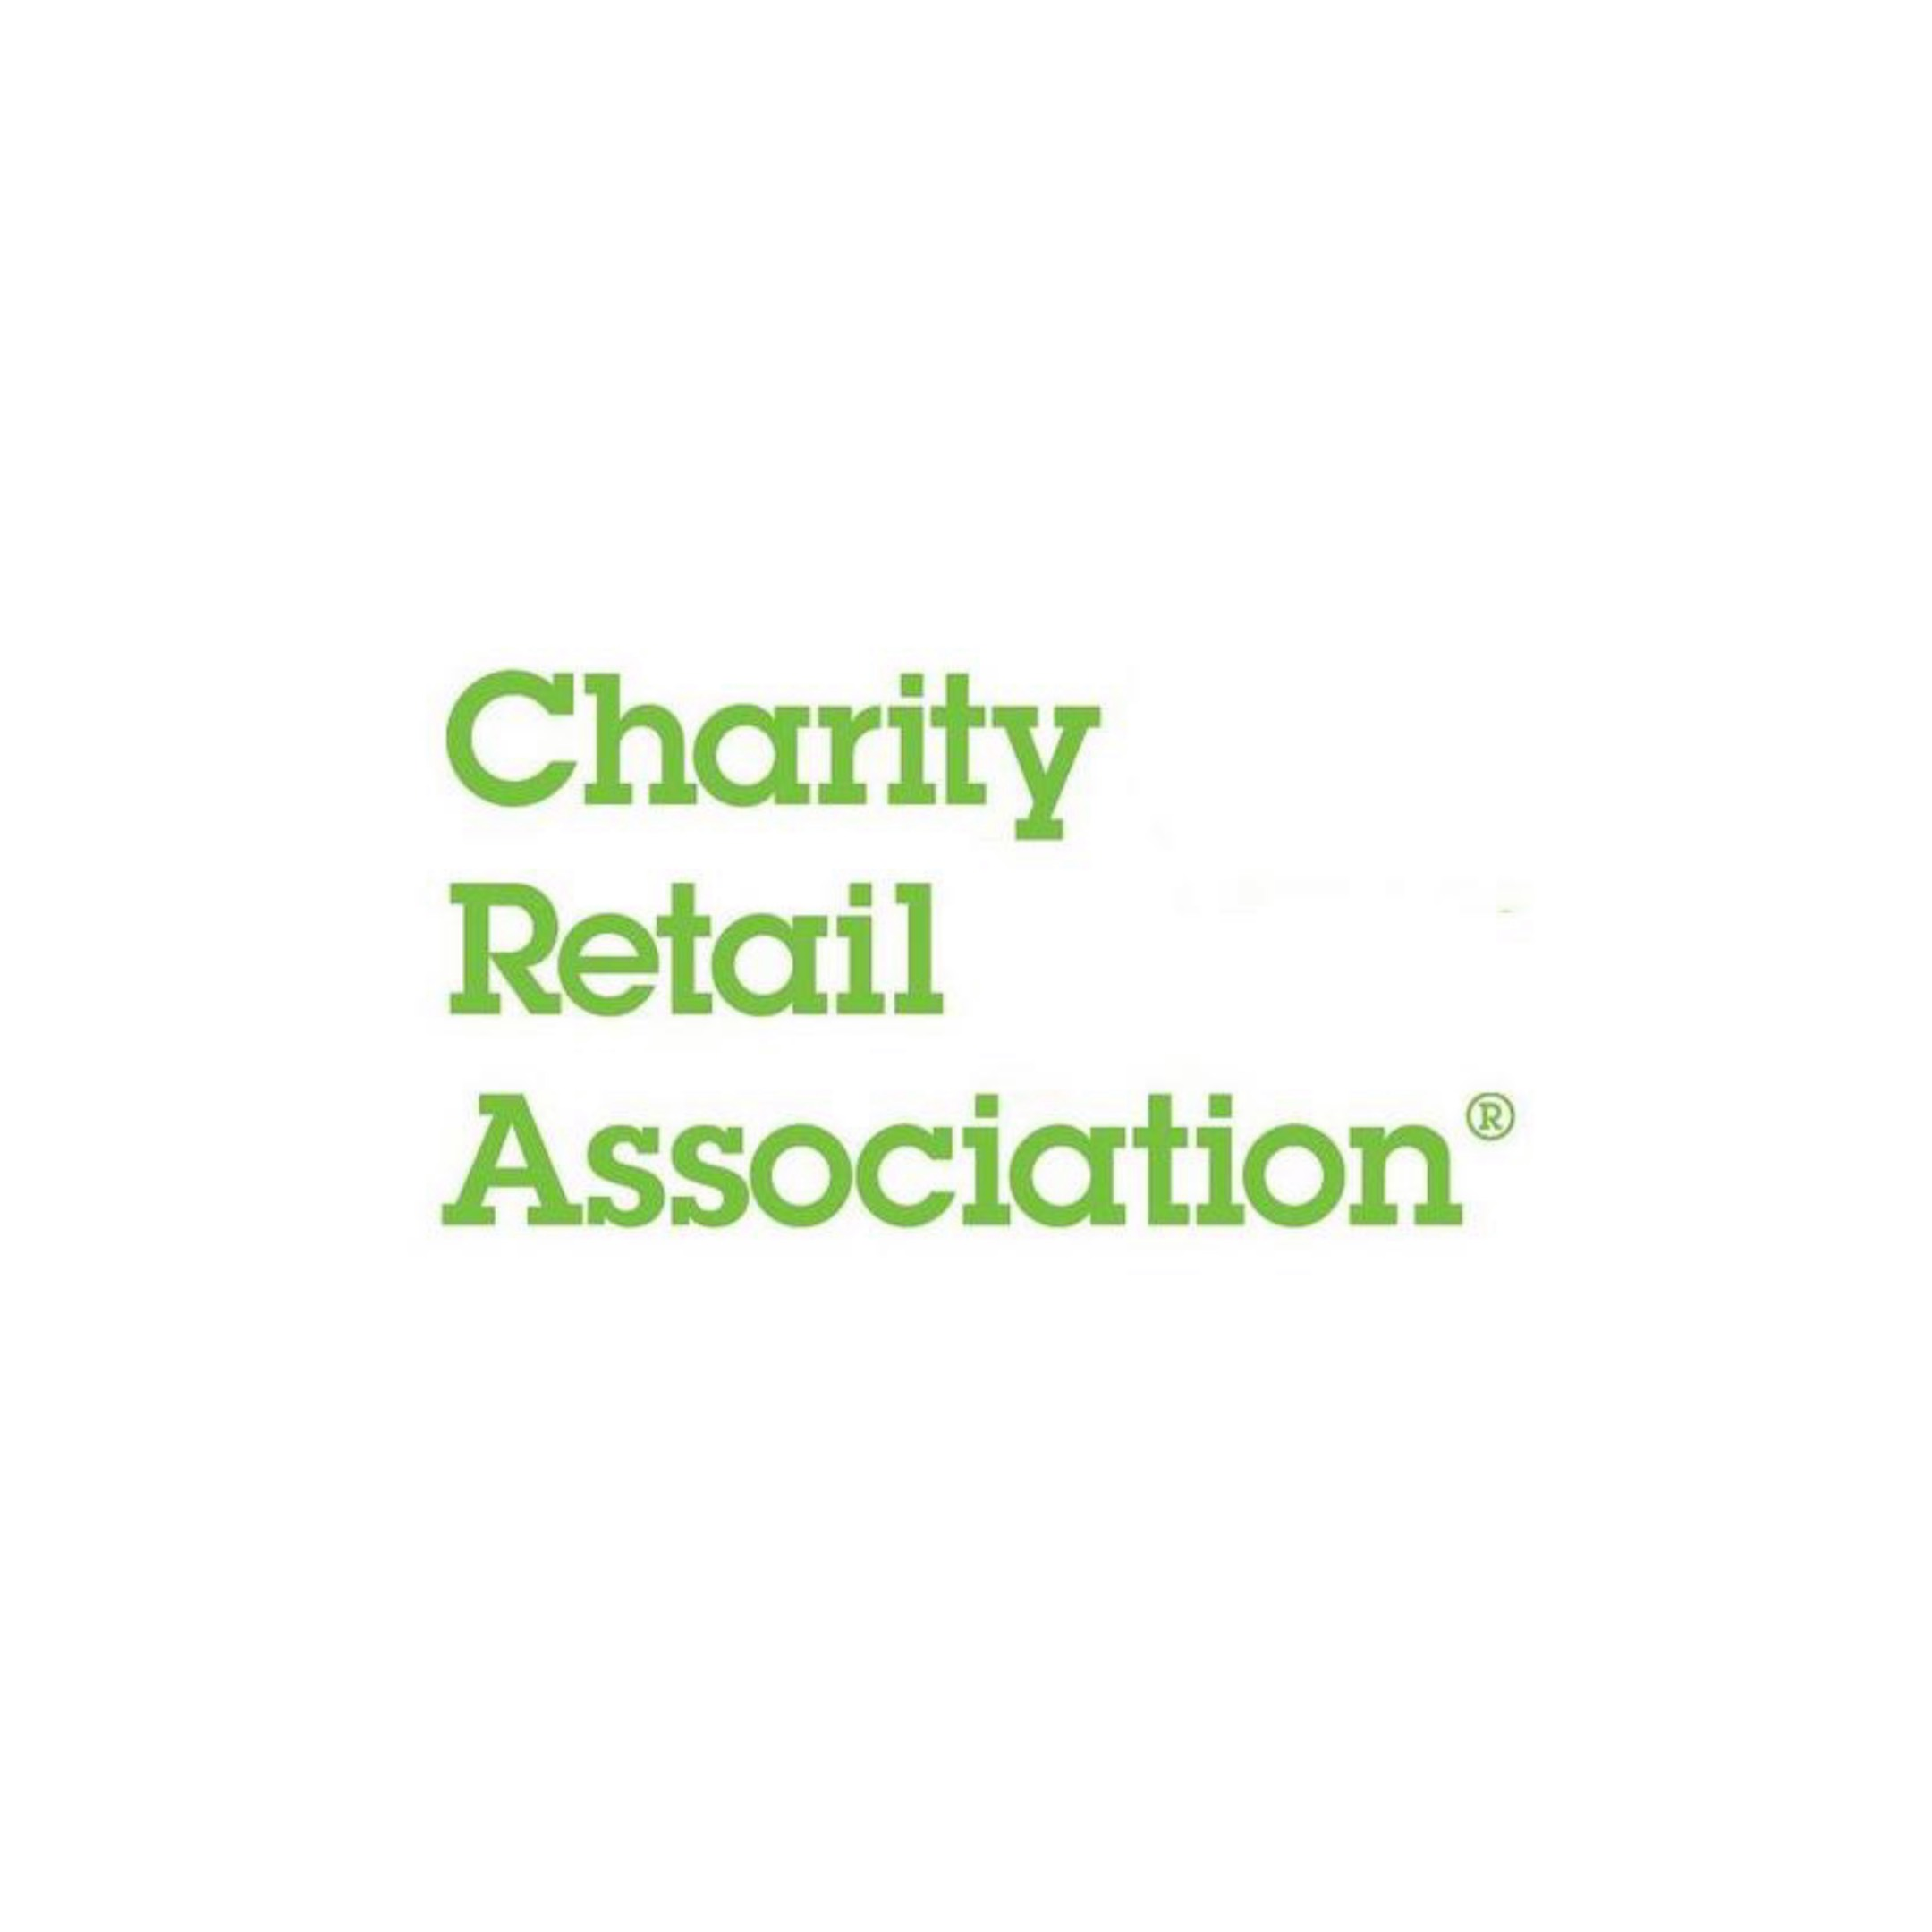 CHARITY RETAIL ASSOCIATION